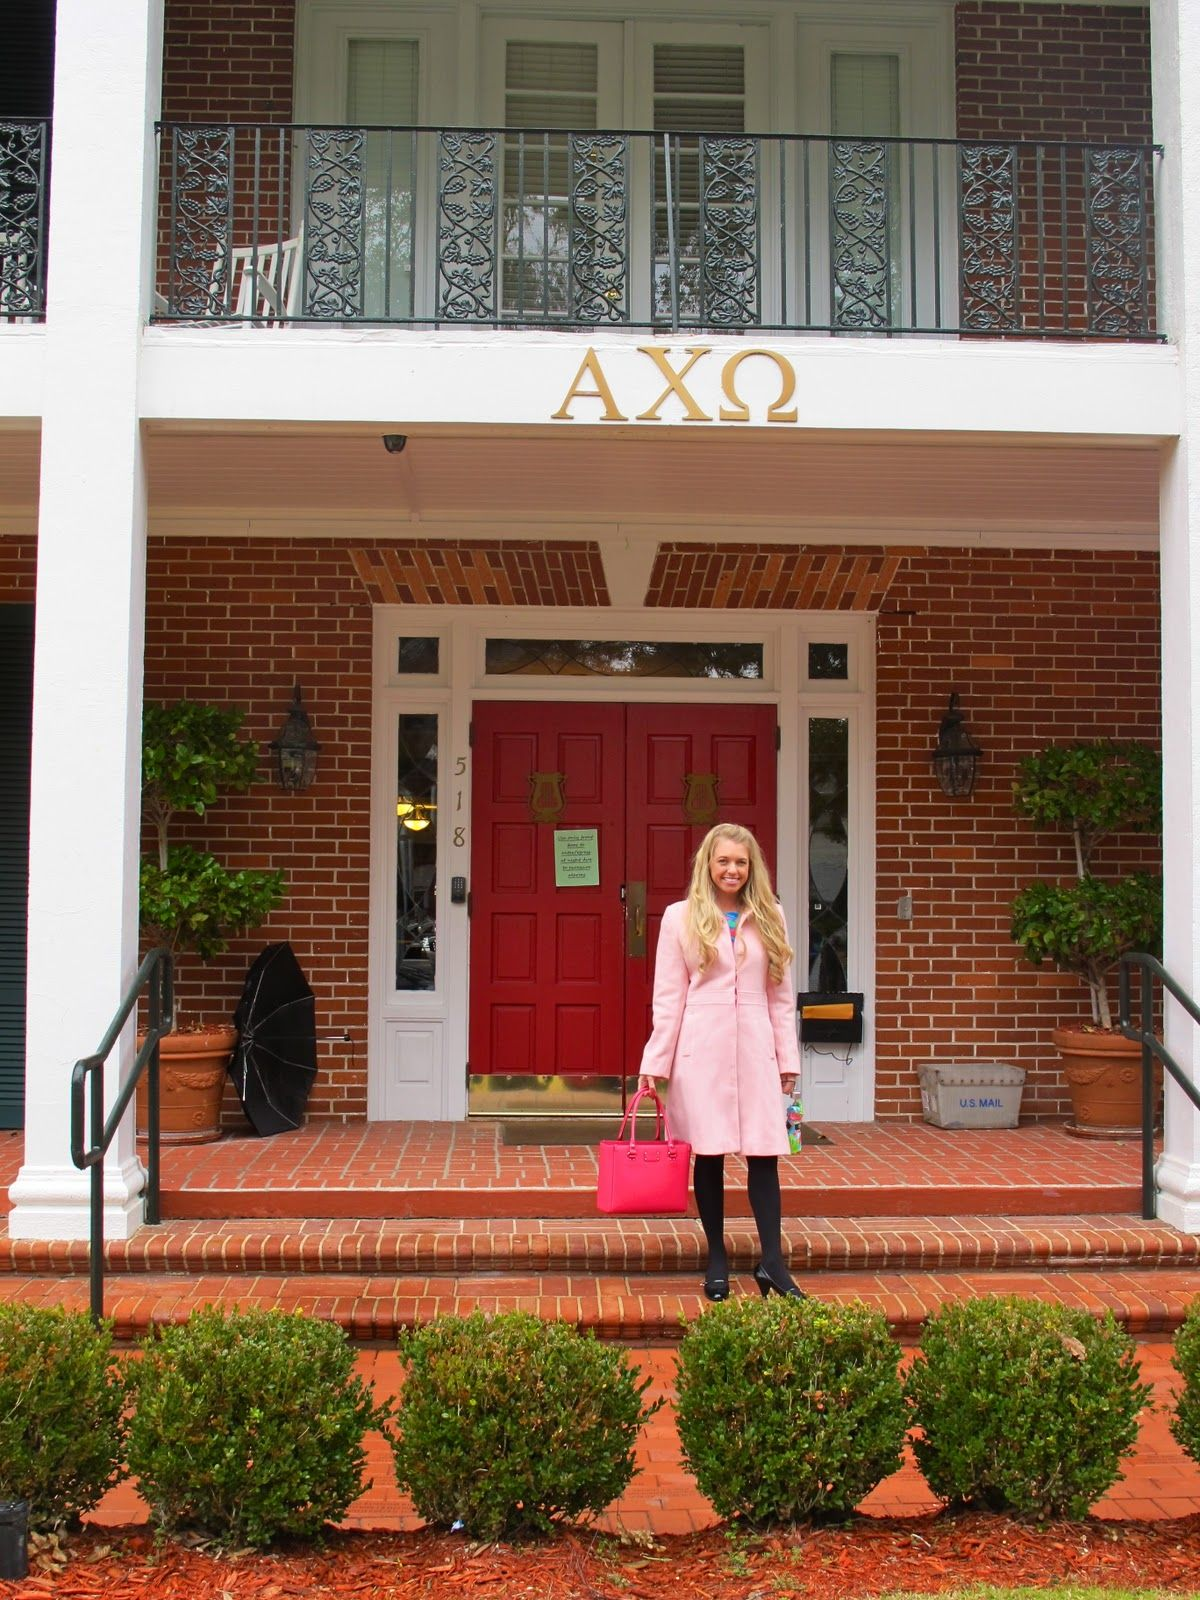 Axo Alpha Chi Omega Fsu I Wish We Had Houses At Wilmy This Is